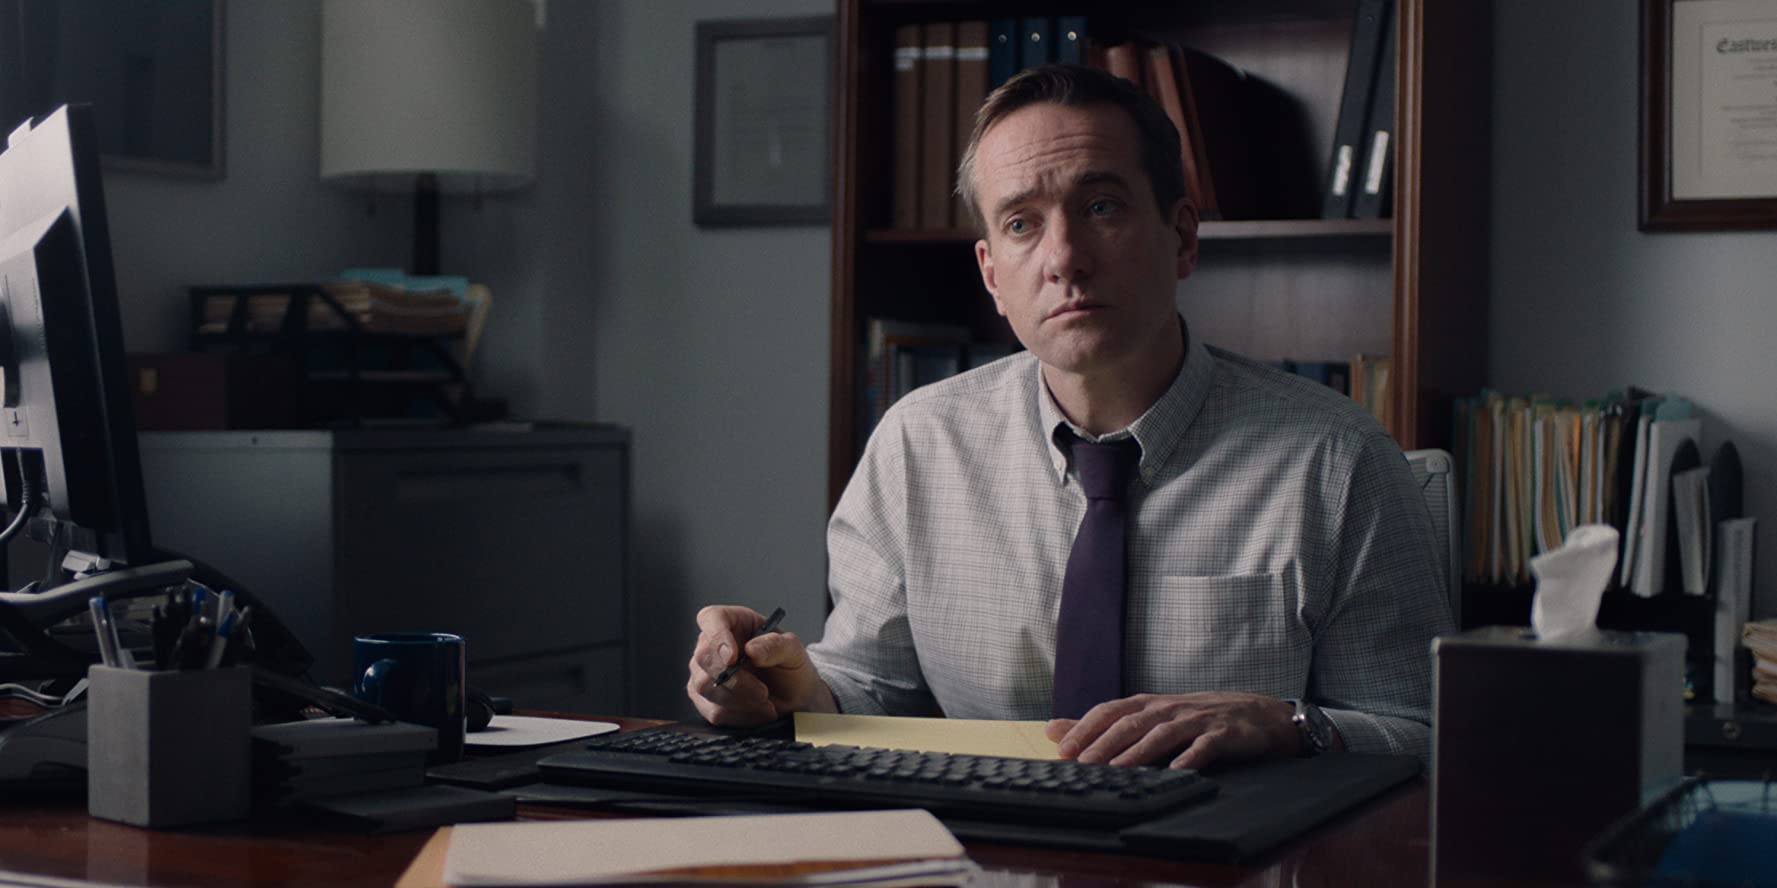 Matthew Macfadyen in The Assistant (2019)